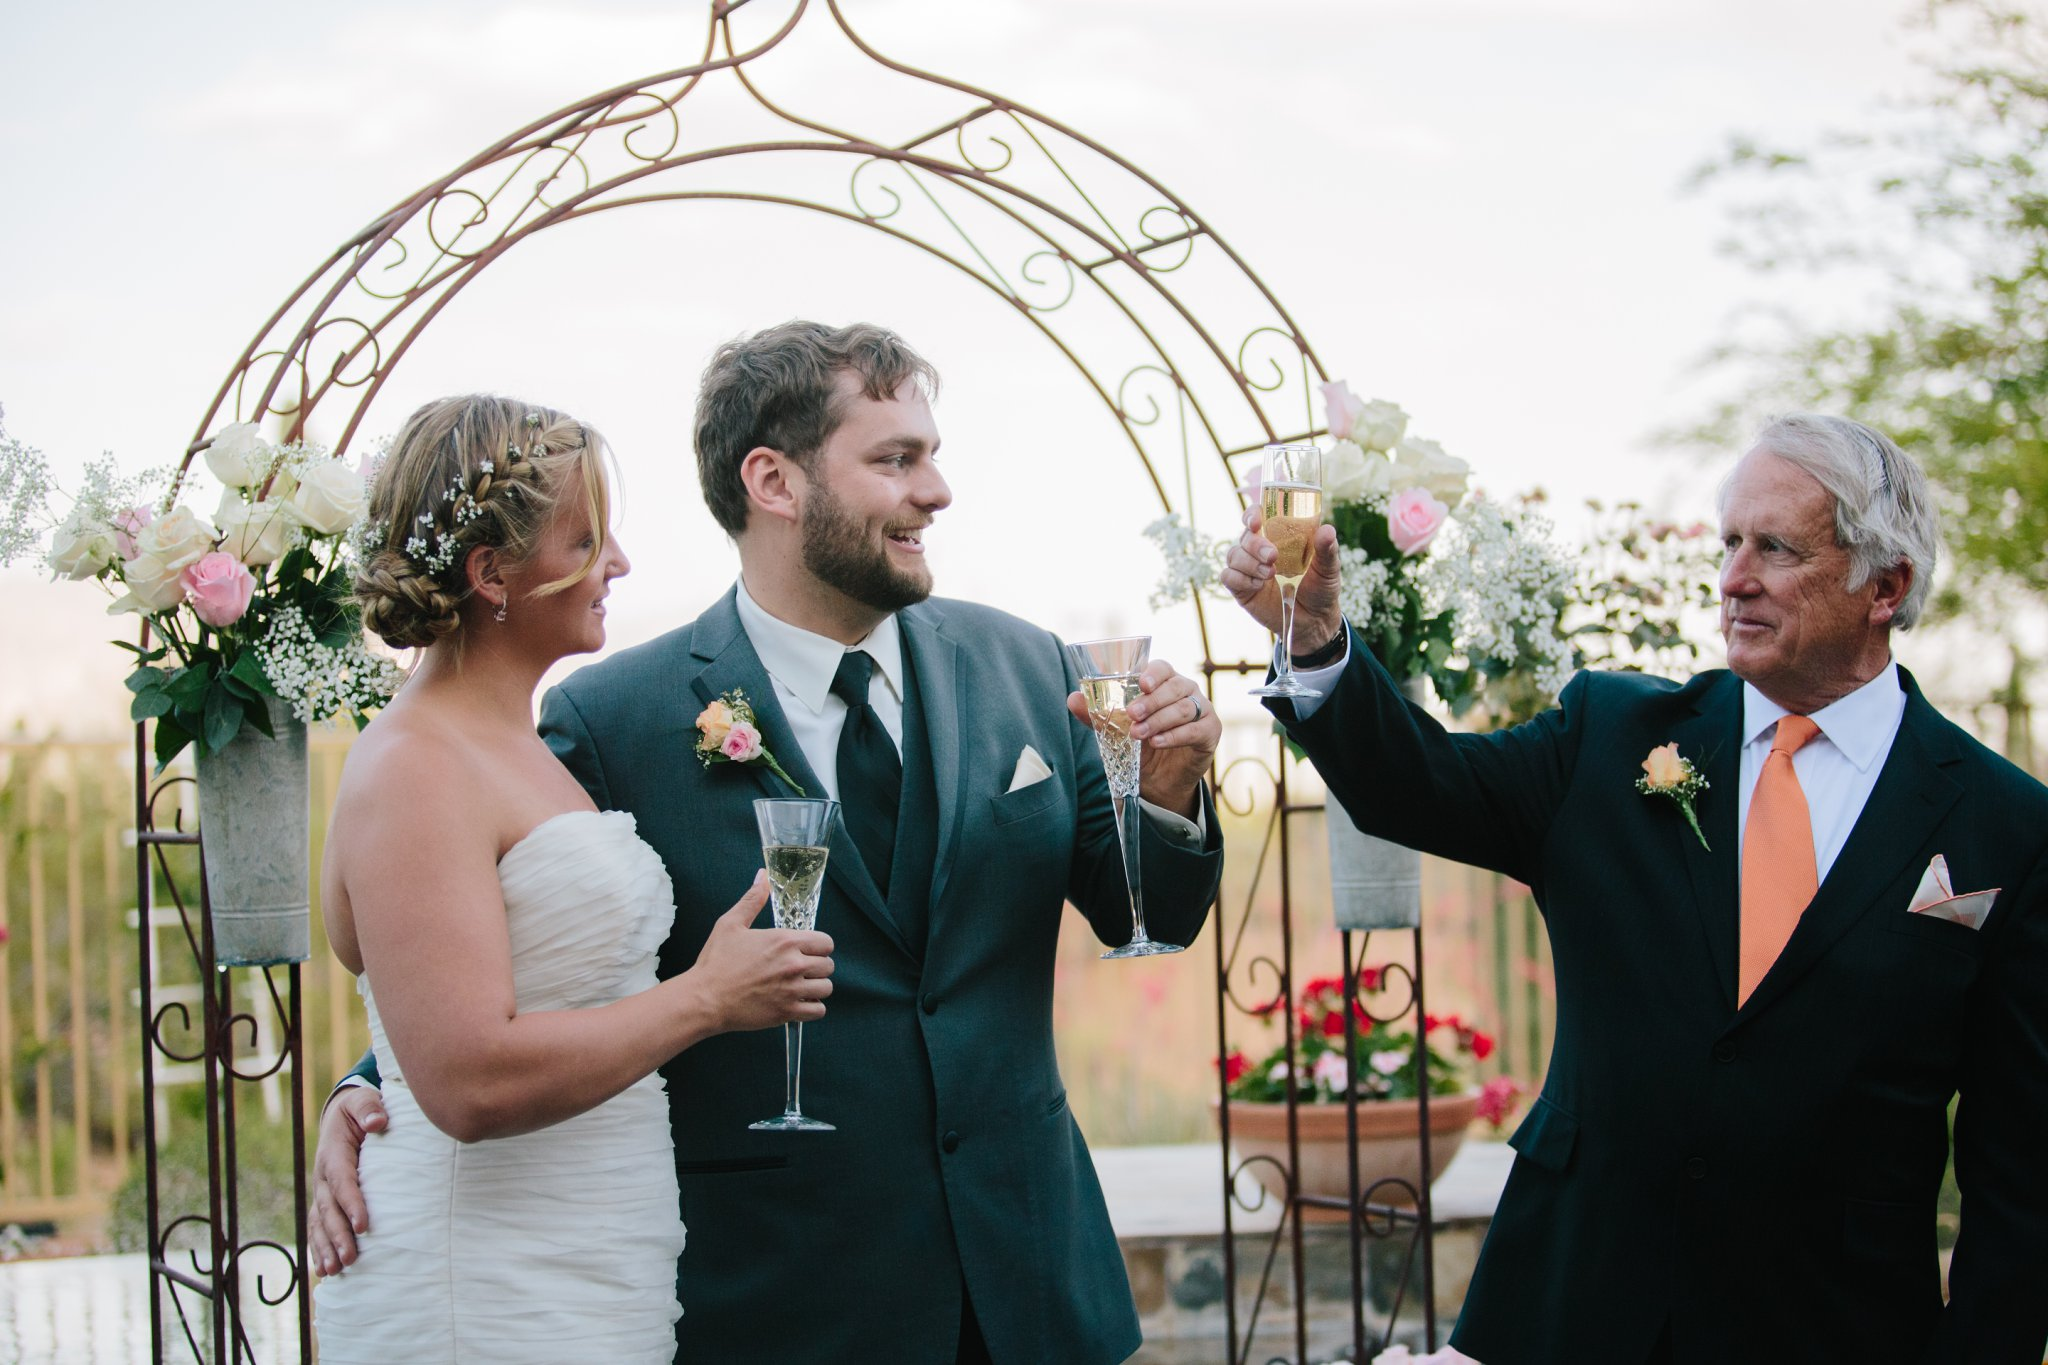 wedding toasts by father of the bride in Arizona backyard